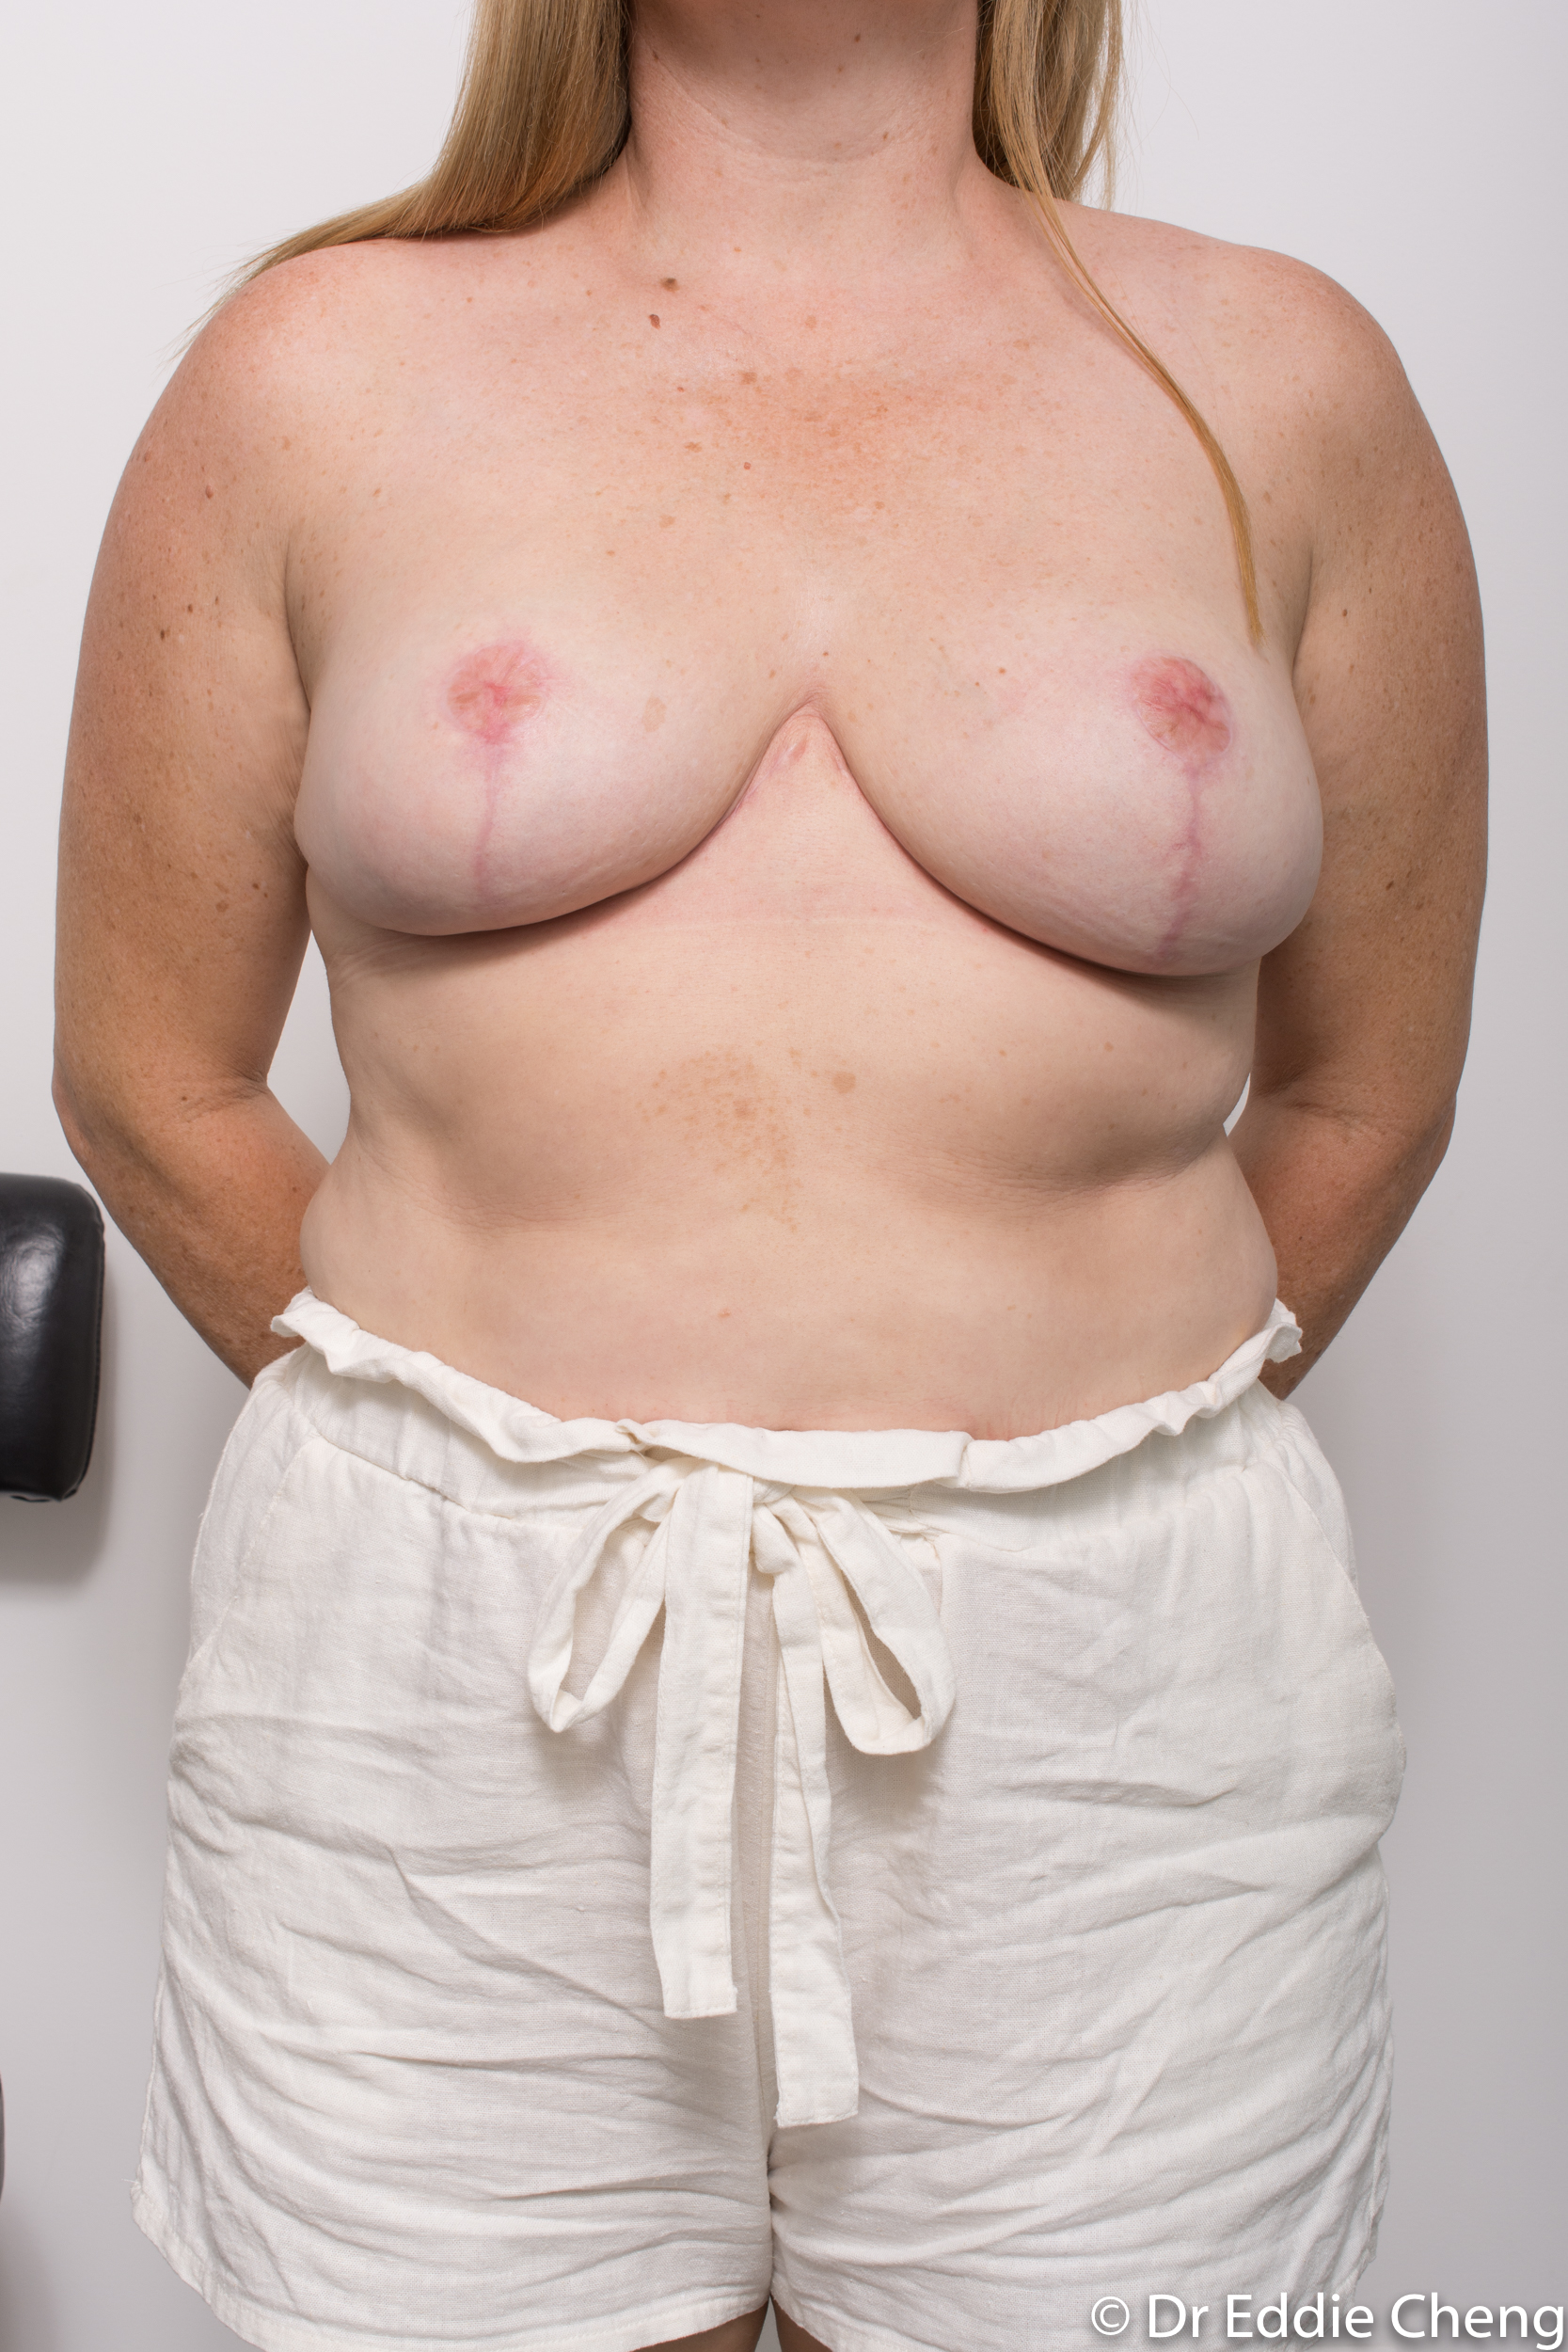 breast reduction dr eddie cheng brisbane surgeon pre and post operative images-6